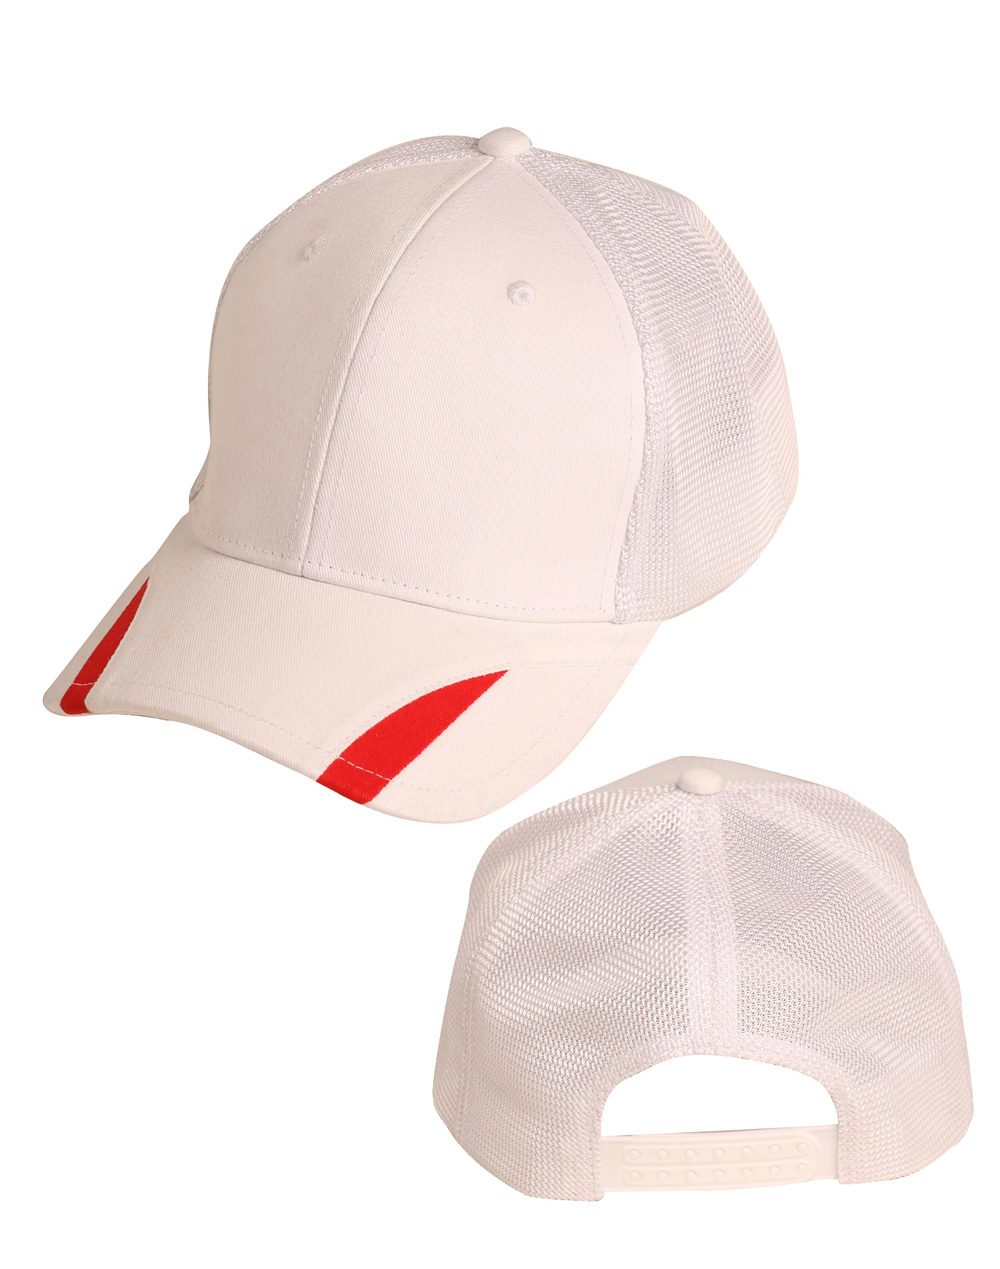 CH41 - White/Red